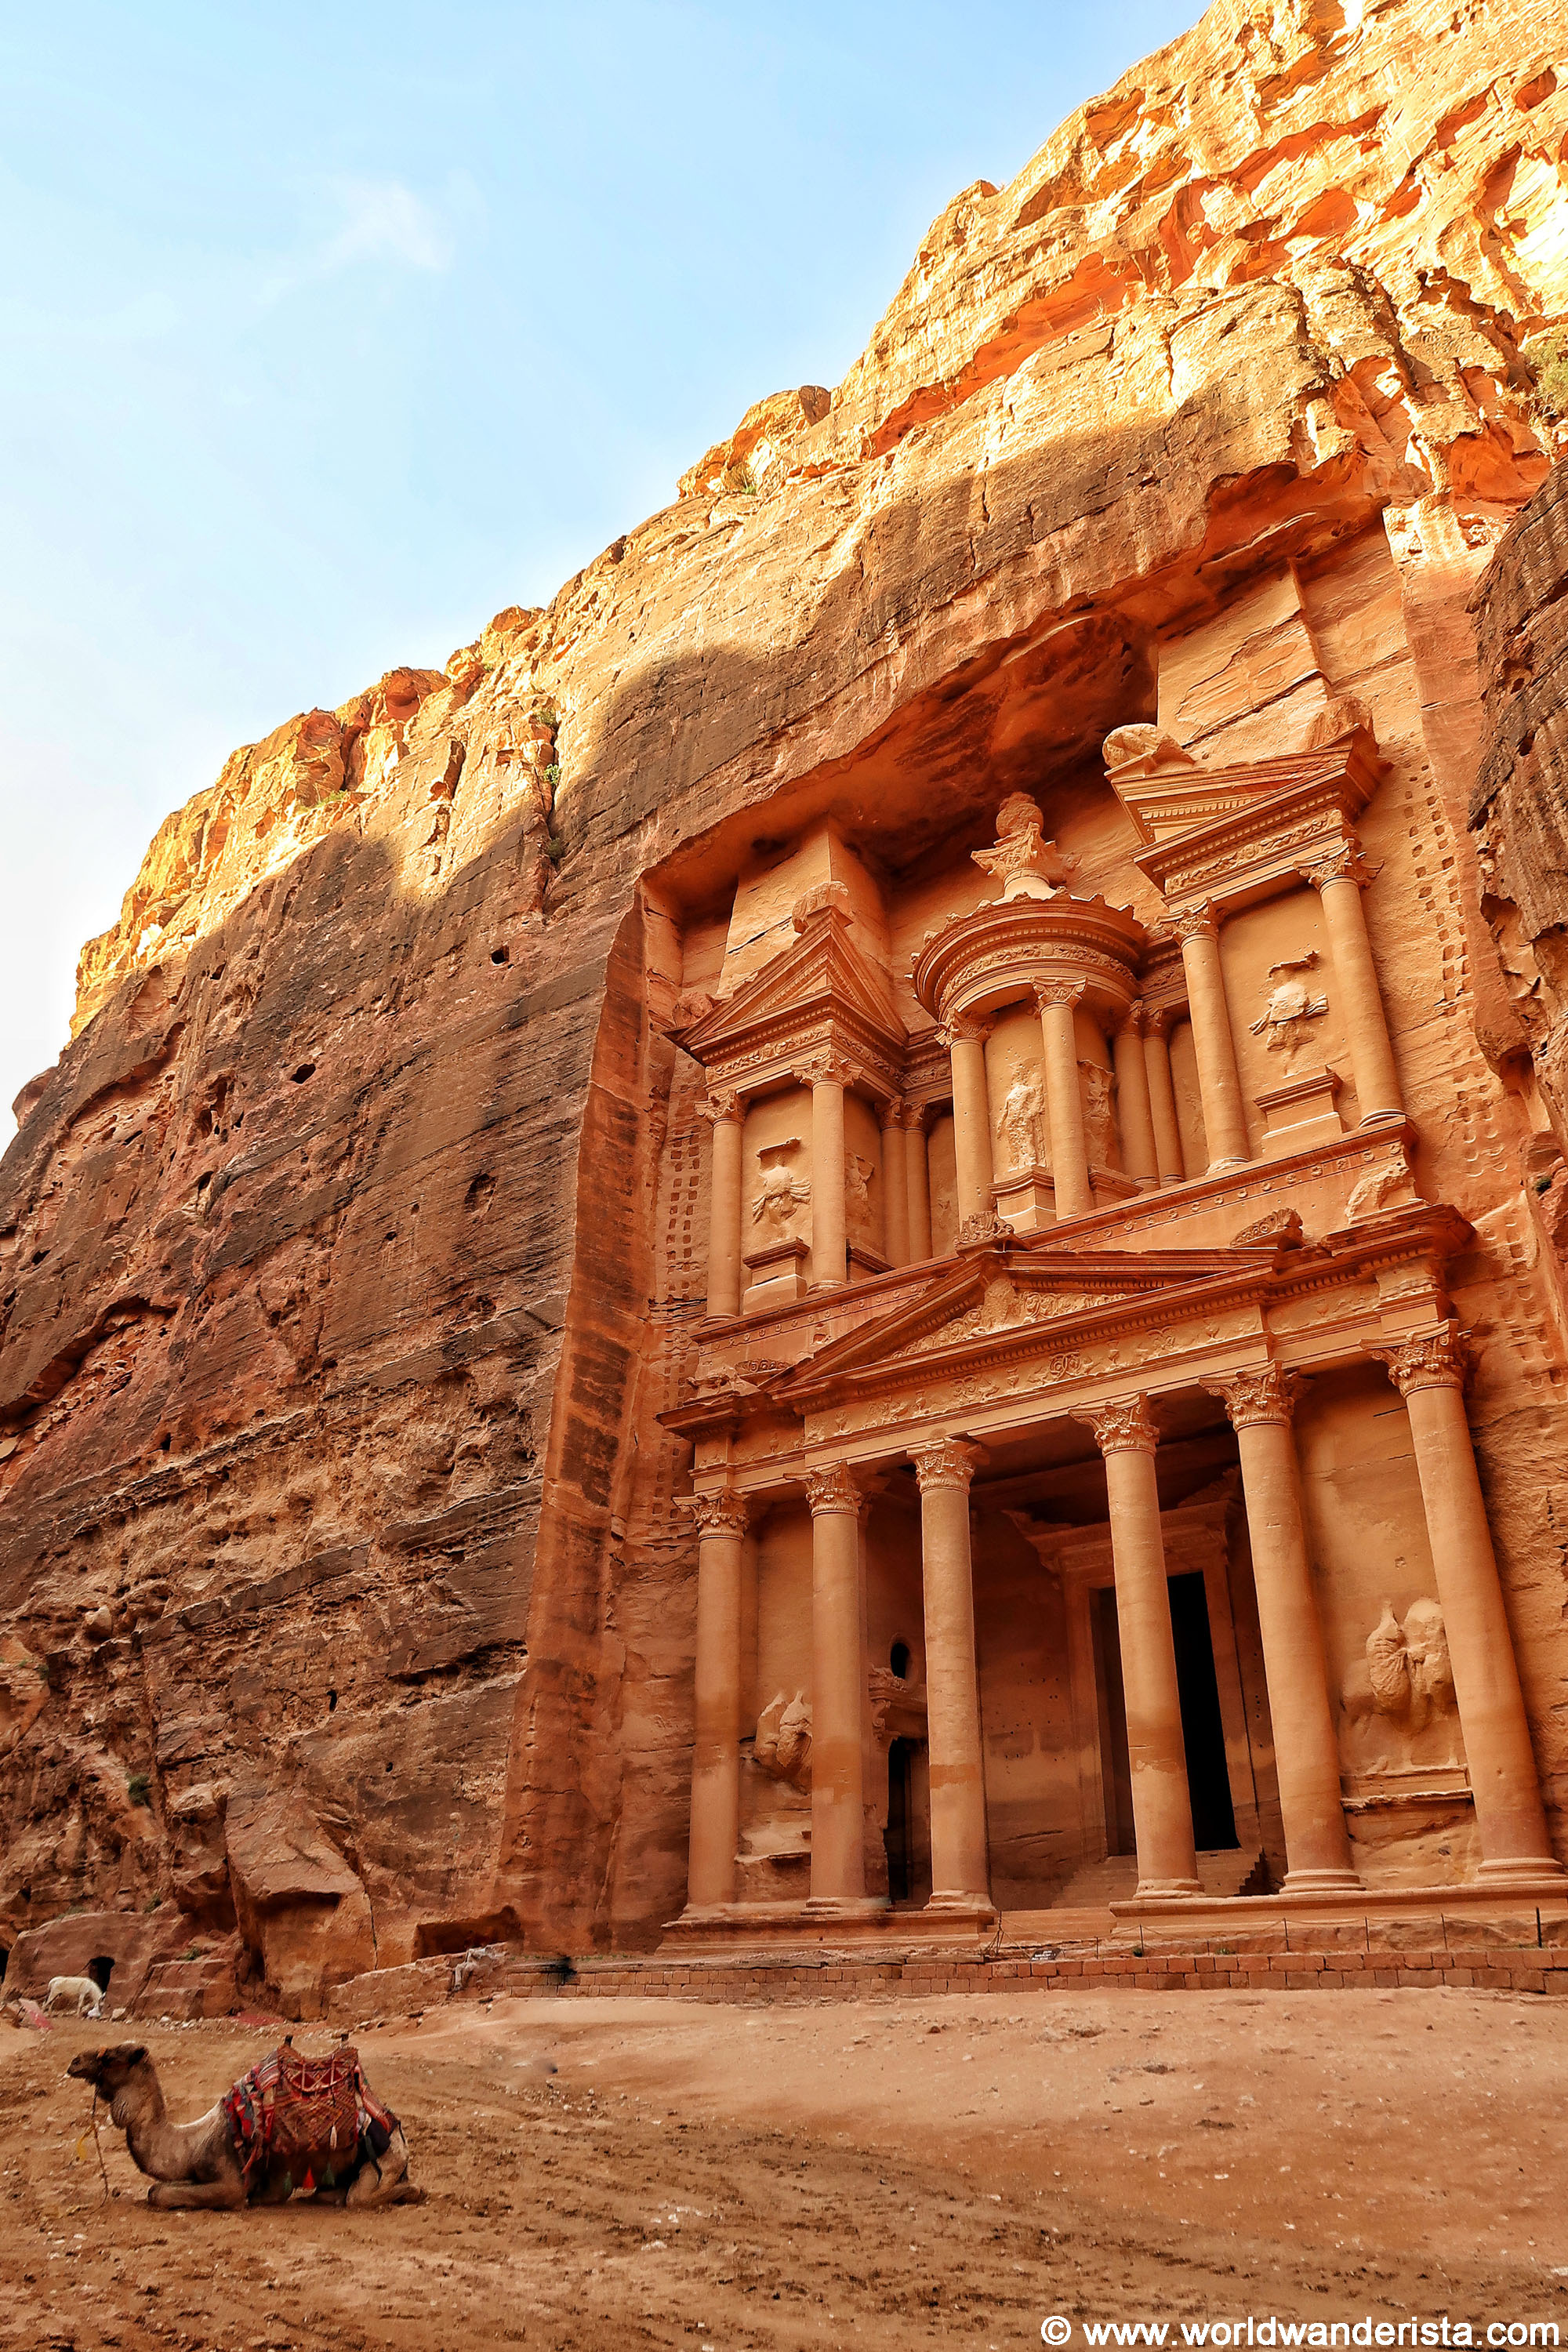 The Best Of The Worst: The Best Views In Petra, The Lost City Of Jordan